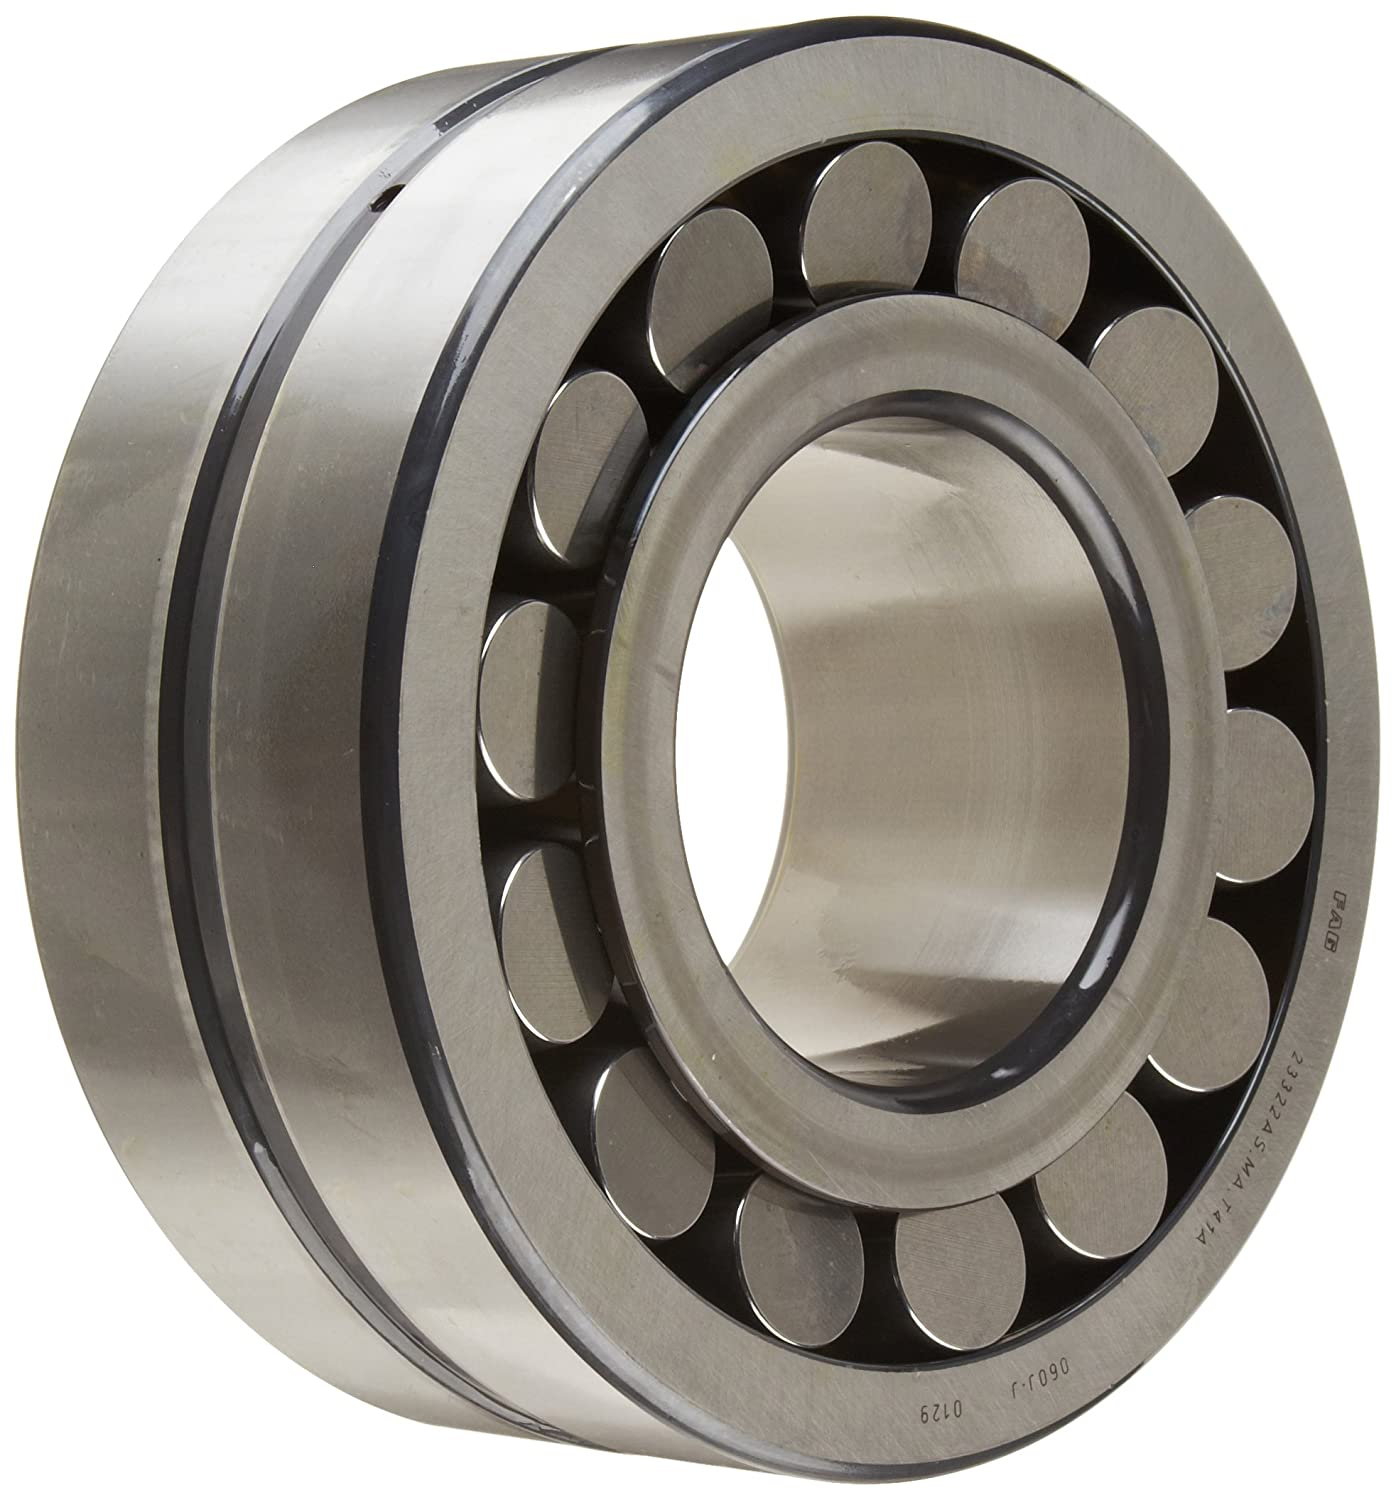 FAG 23322AS-MA-T41A Shaker Screen Spherical Roller Bearing, Brass Cage, C4  Clearance, Metric, 110mm ID, 240mm OD, 92.1mm Width, 2600rpm Maximum  Rotational ...